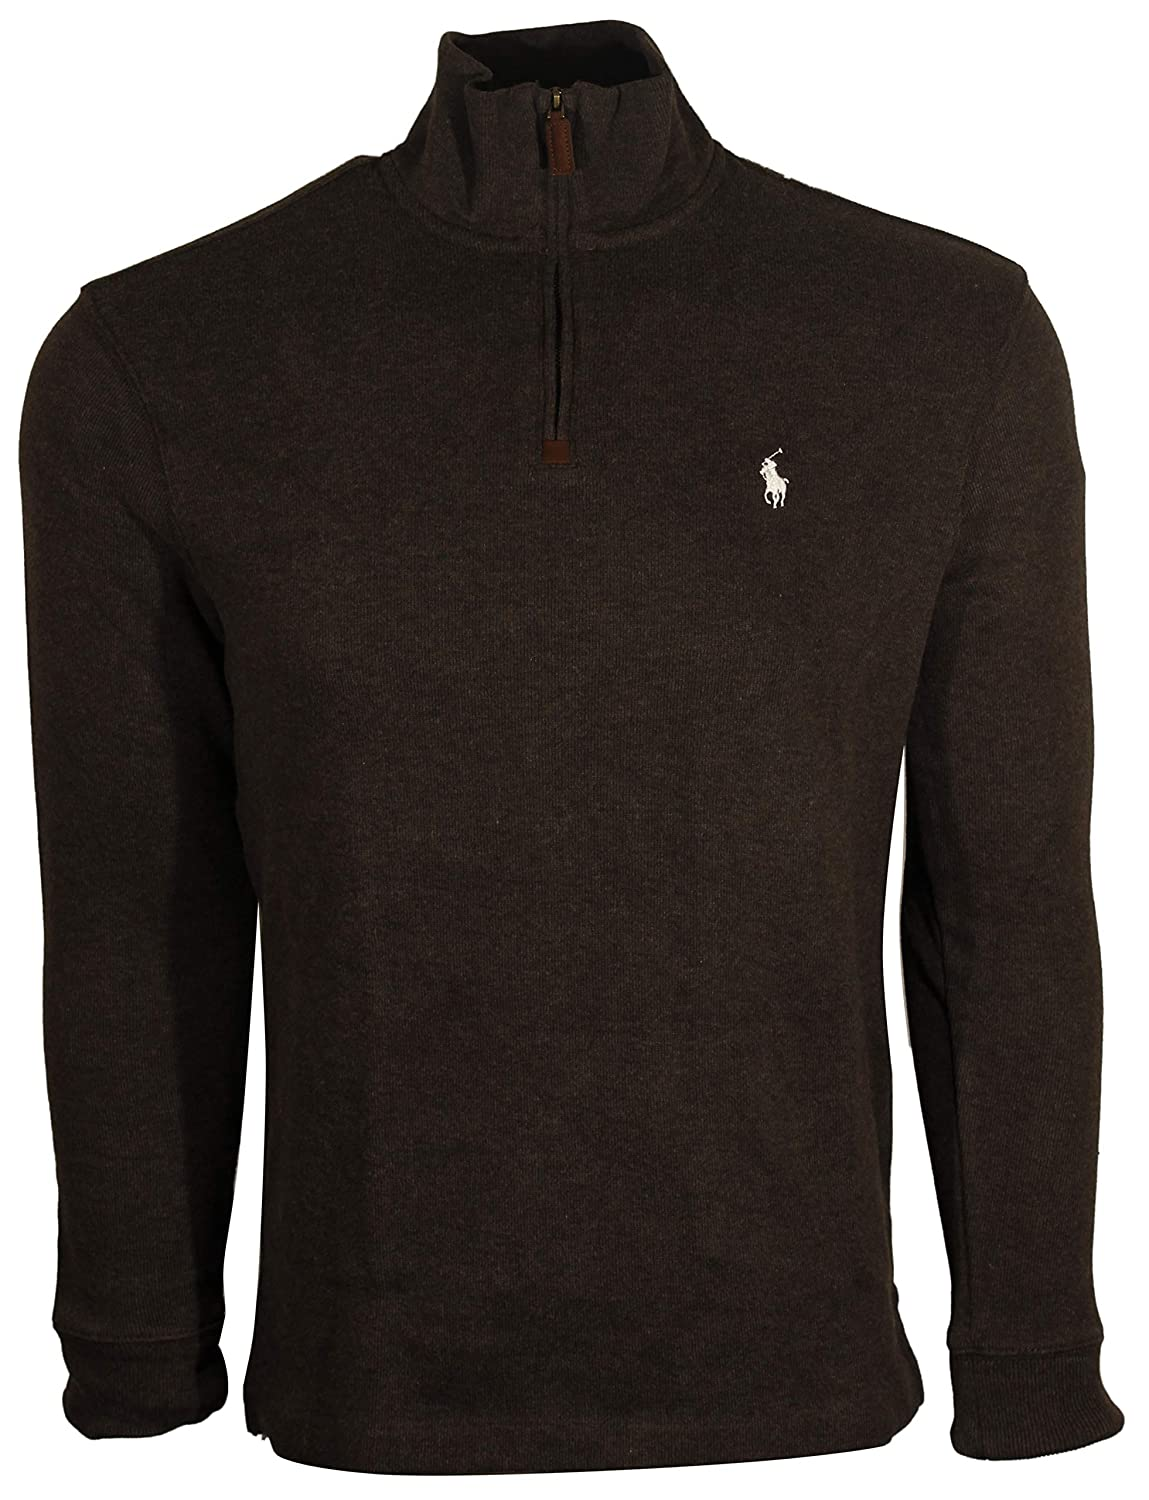 2ab63de00922 Polo Ralph Lauren Mens Half Zip French Rib Cotton Sweater ...